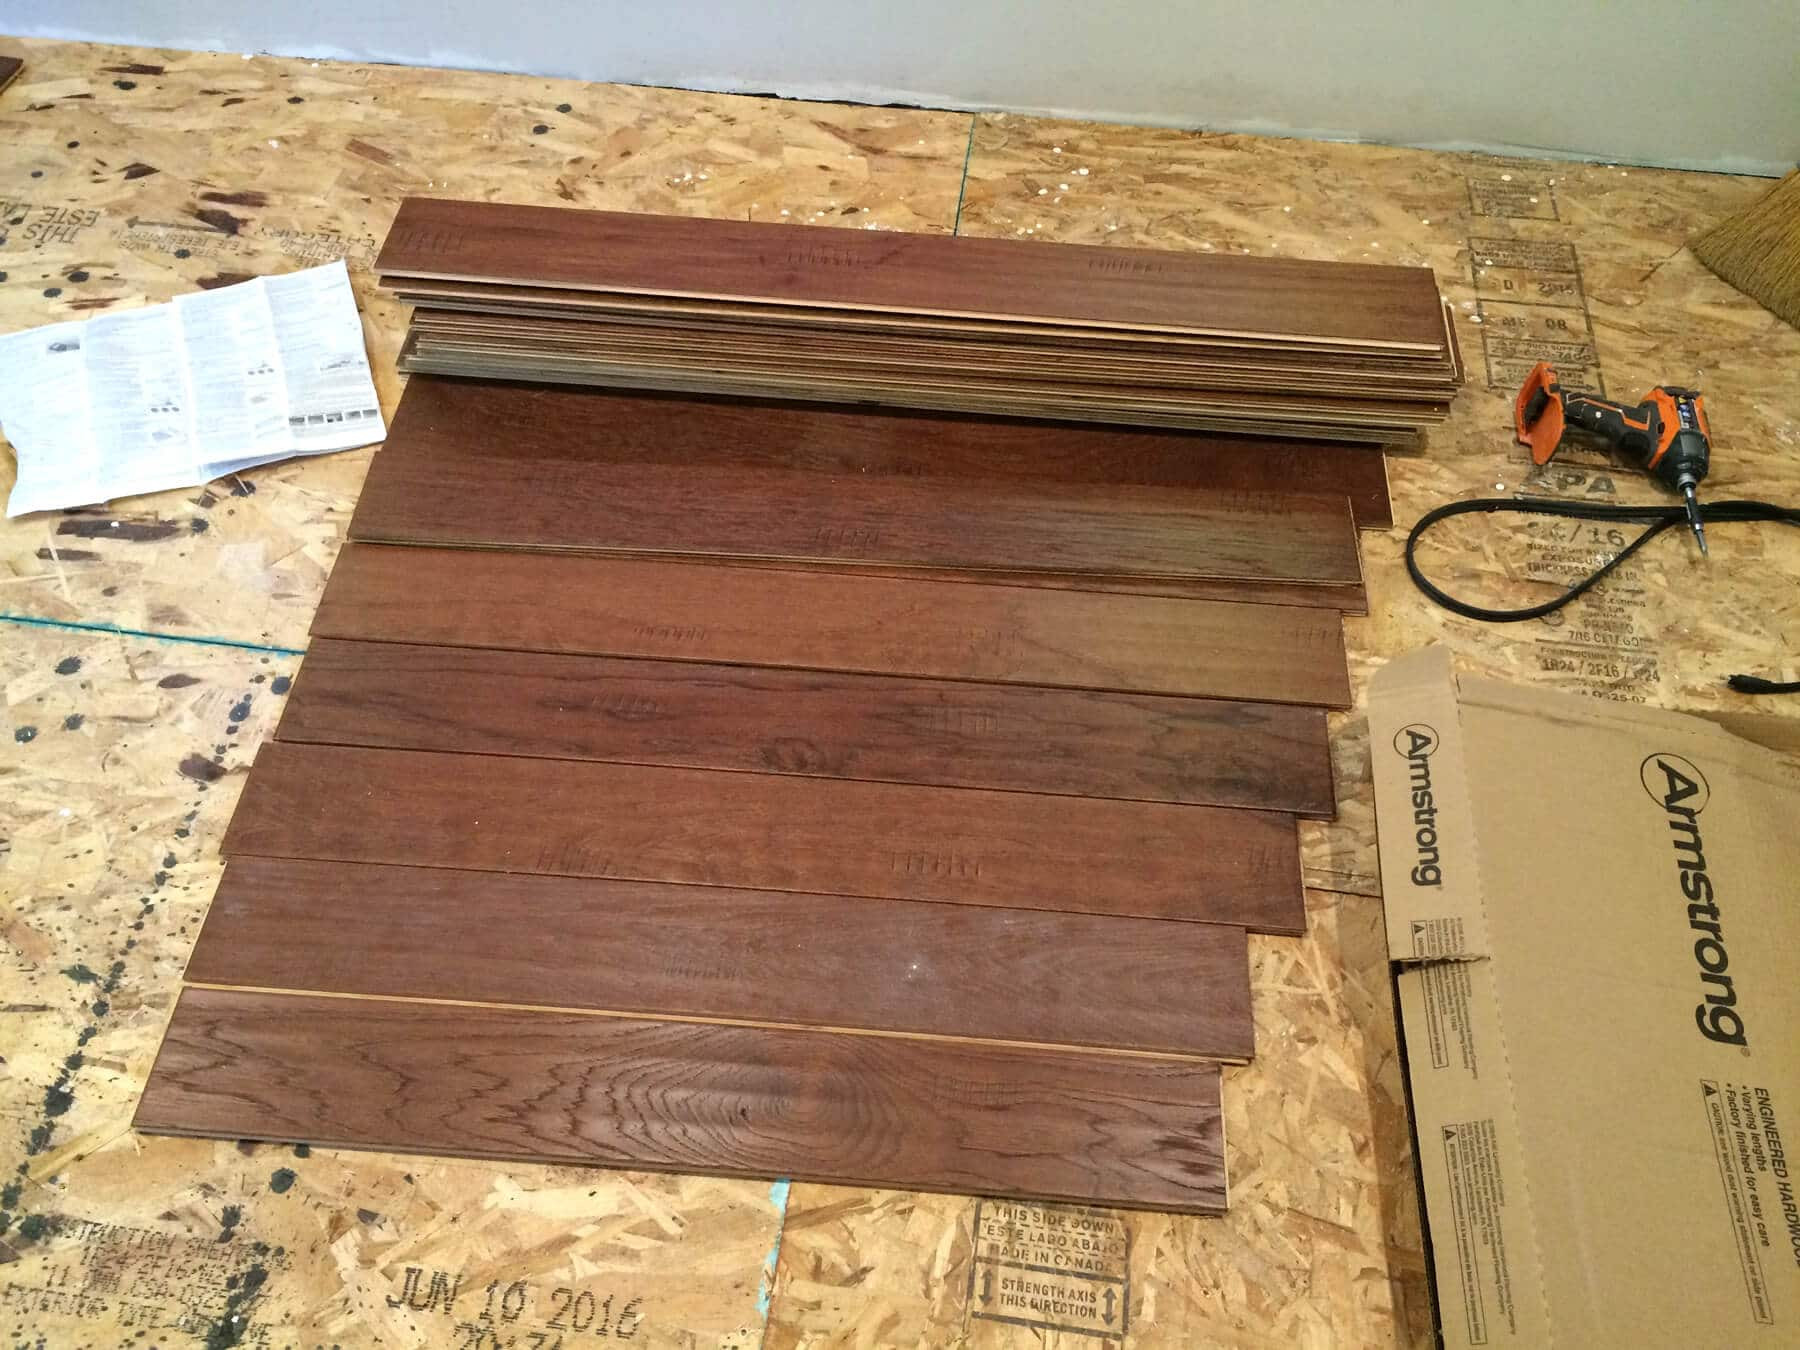 hardwood floor finish life expectancy of the micro dwelling project part 5 flooring the daring gourmet with laying down the sub flooring was fine but honestly the thought of installing hardwood floors seemed extremely intimidating we were pretty nervous going in